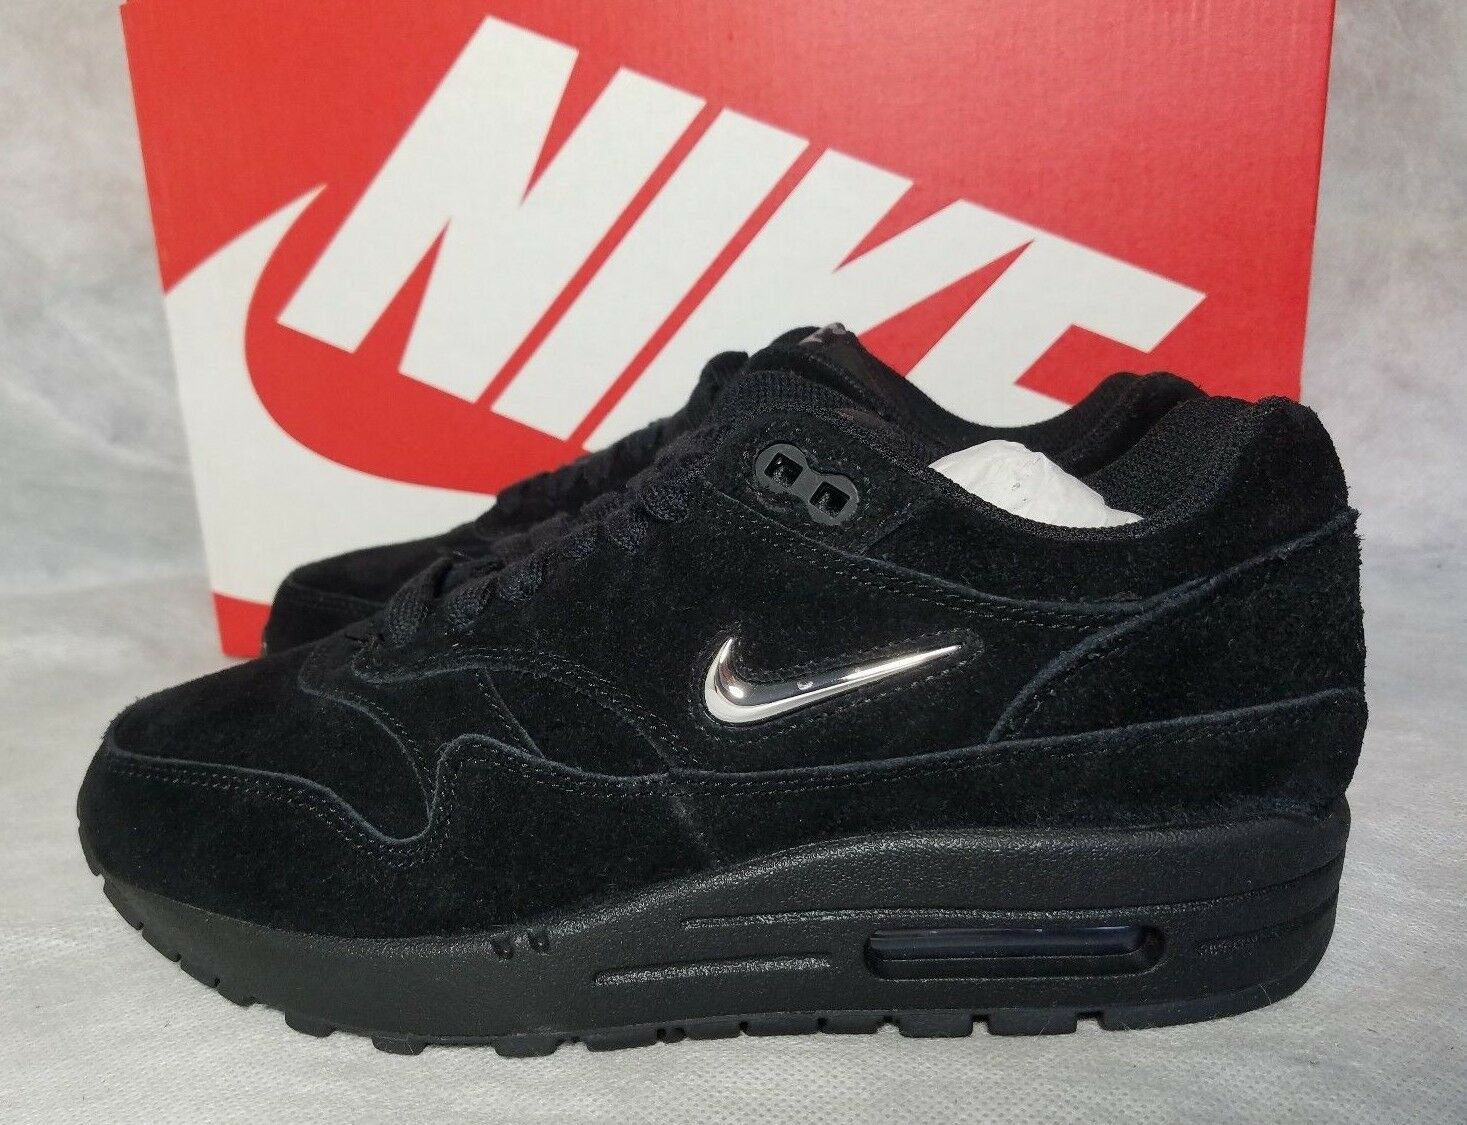 New Nike Air Max 1 Premium SC Run Women Size 7 Shoe Black Metallic Silver Jewel